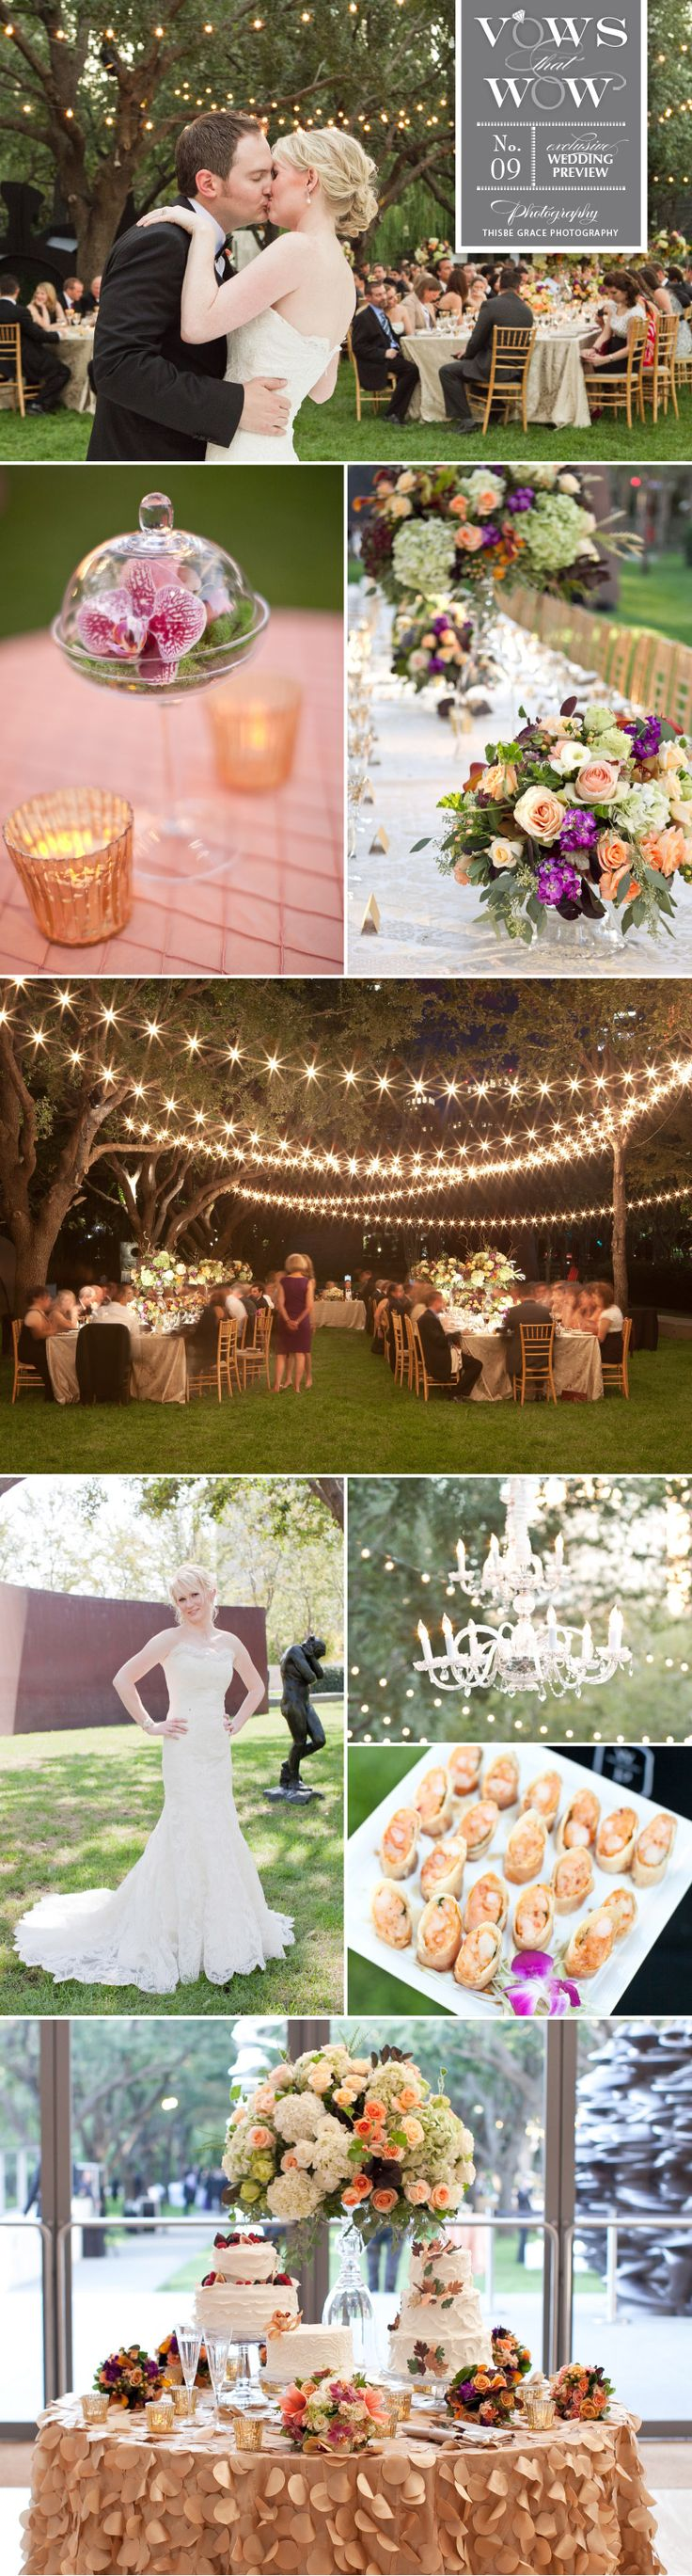 Fabulous outdoor fall wedding coordinated by Jordan Payne Events! Gorgeous outdoor lighting from Beyond!  Photos by Thisbe Grace Photography  #fall #wedding #outdoor #chandeliers #lighting